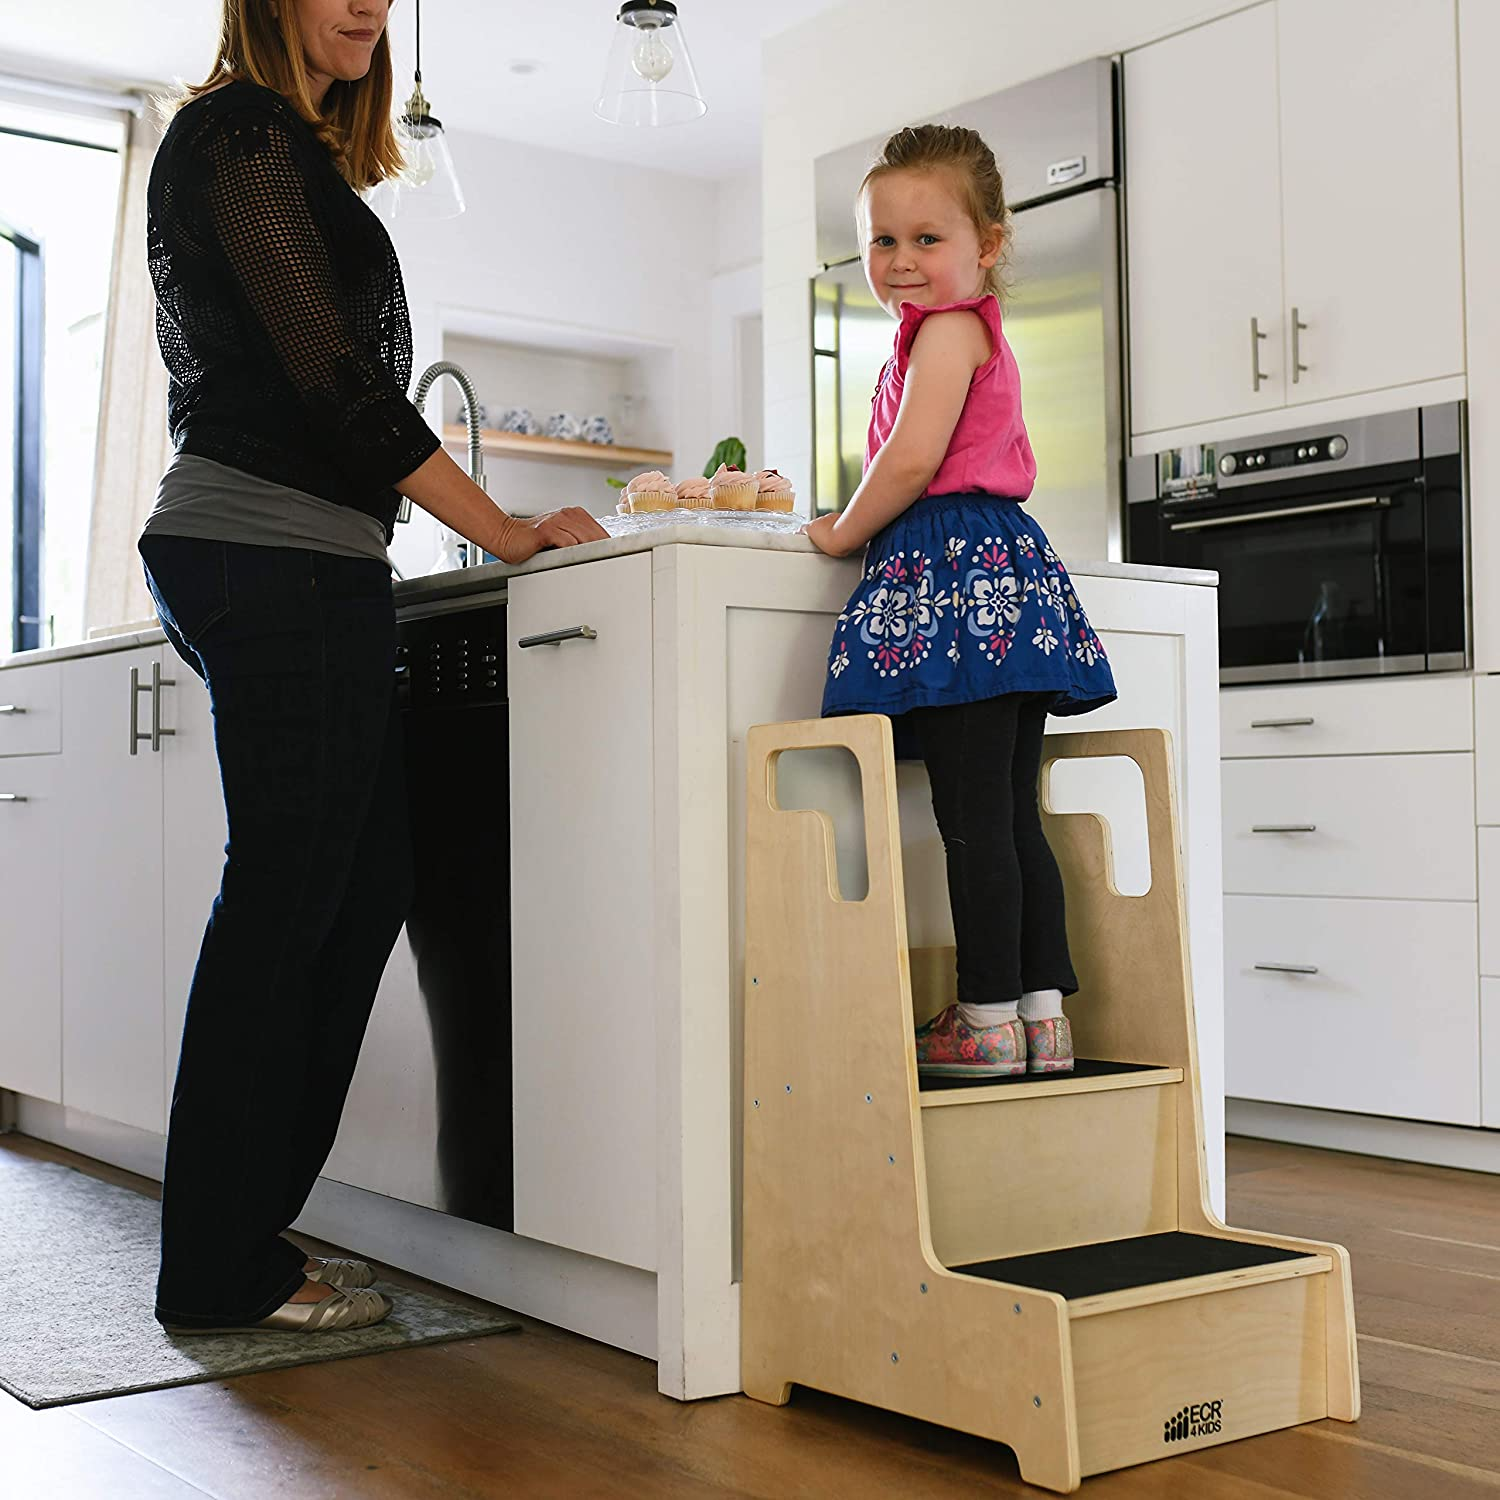 Two Step Wood Stepping Stool for Kids and Toddlers ECR4Kids Reach-Up Step Stool with Support Handles